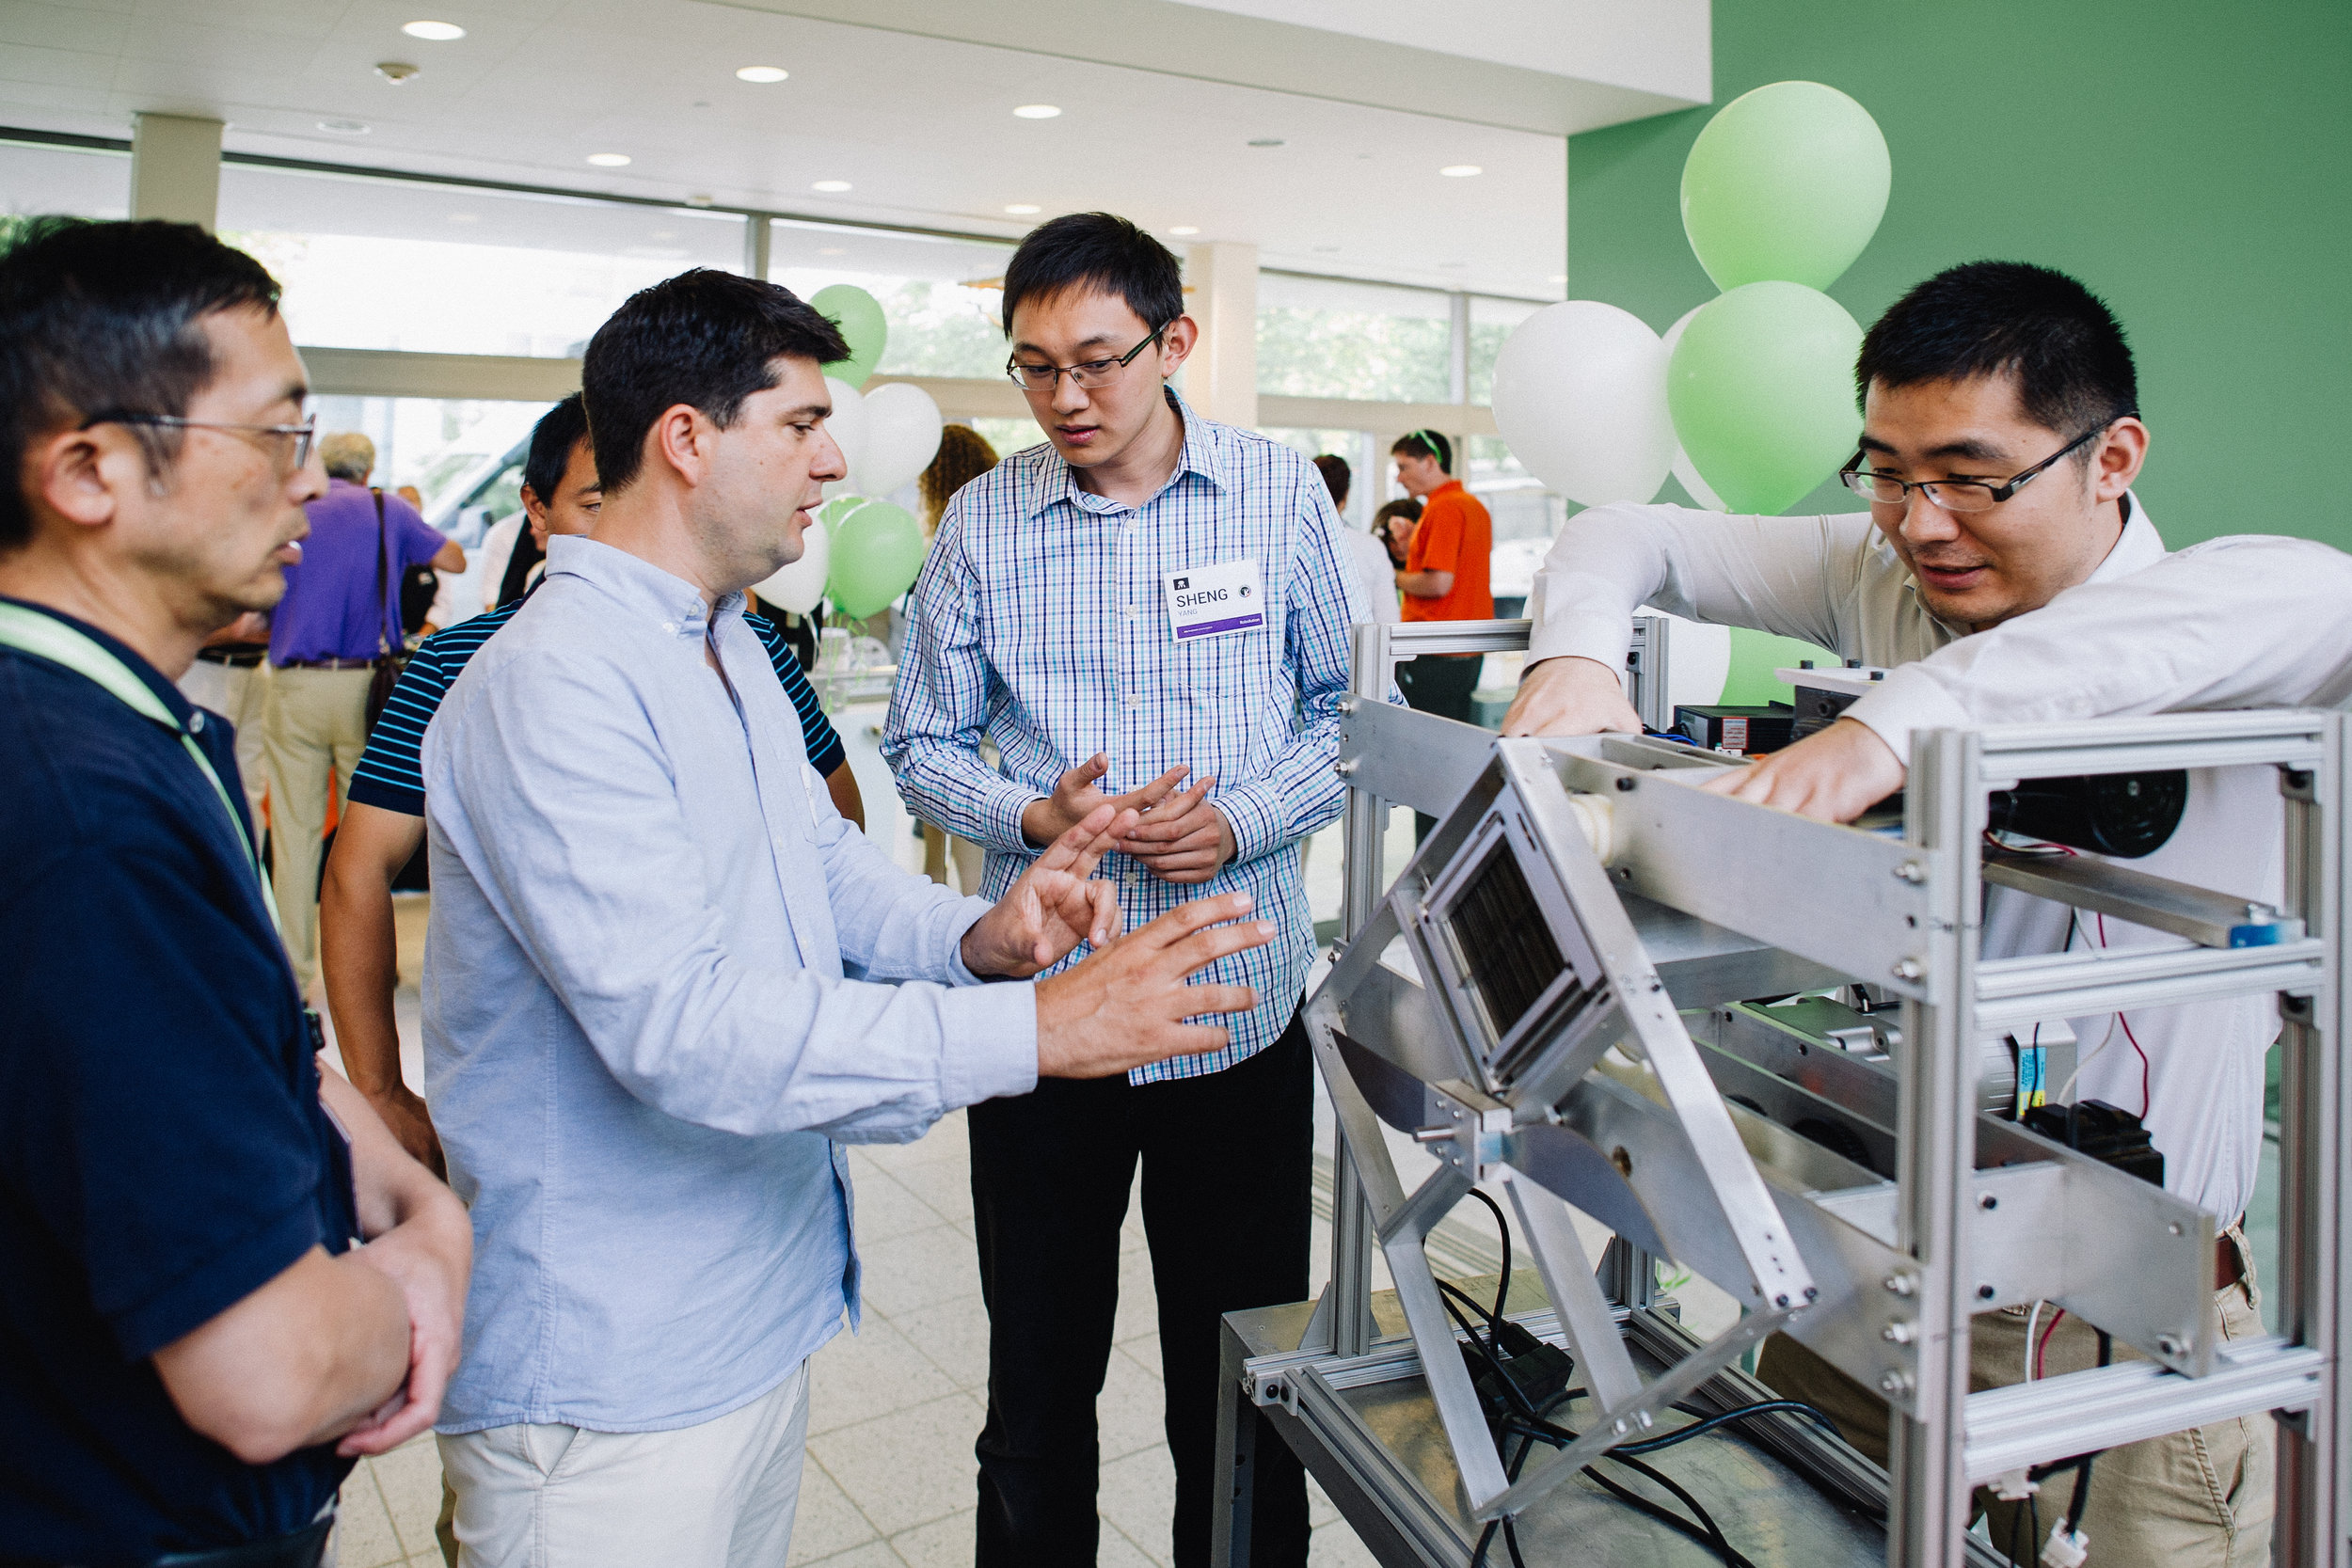 Students and professors reviewing an electrical engineering gadget in an academic building.